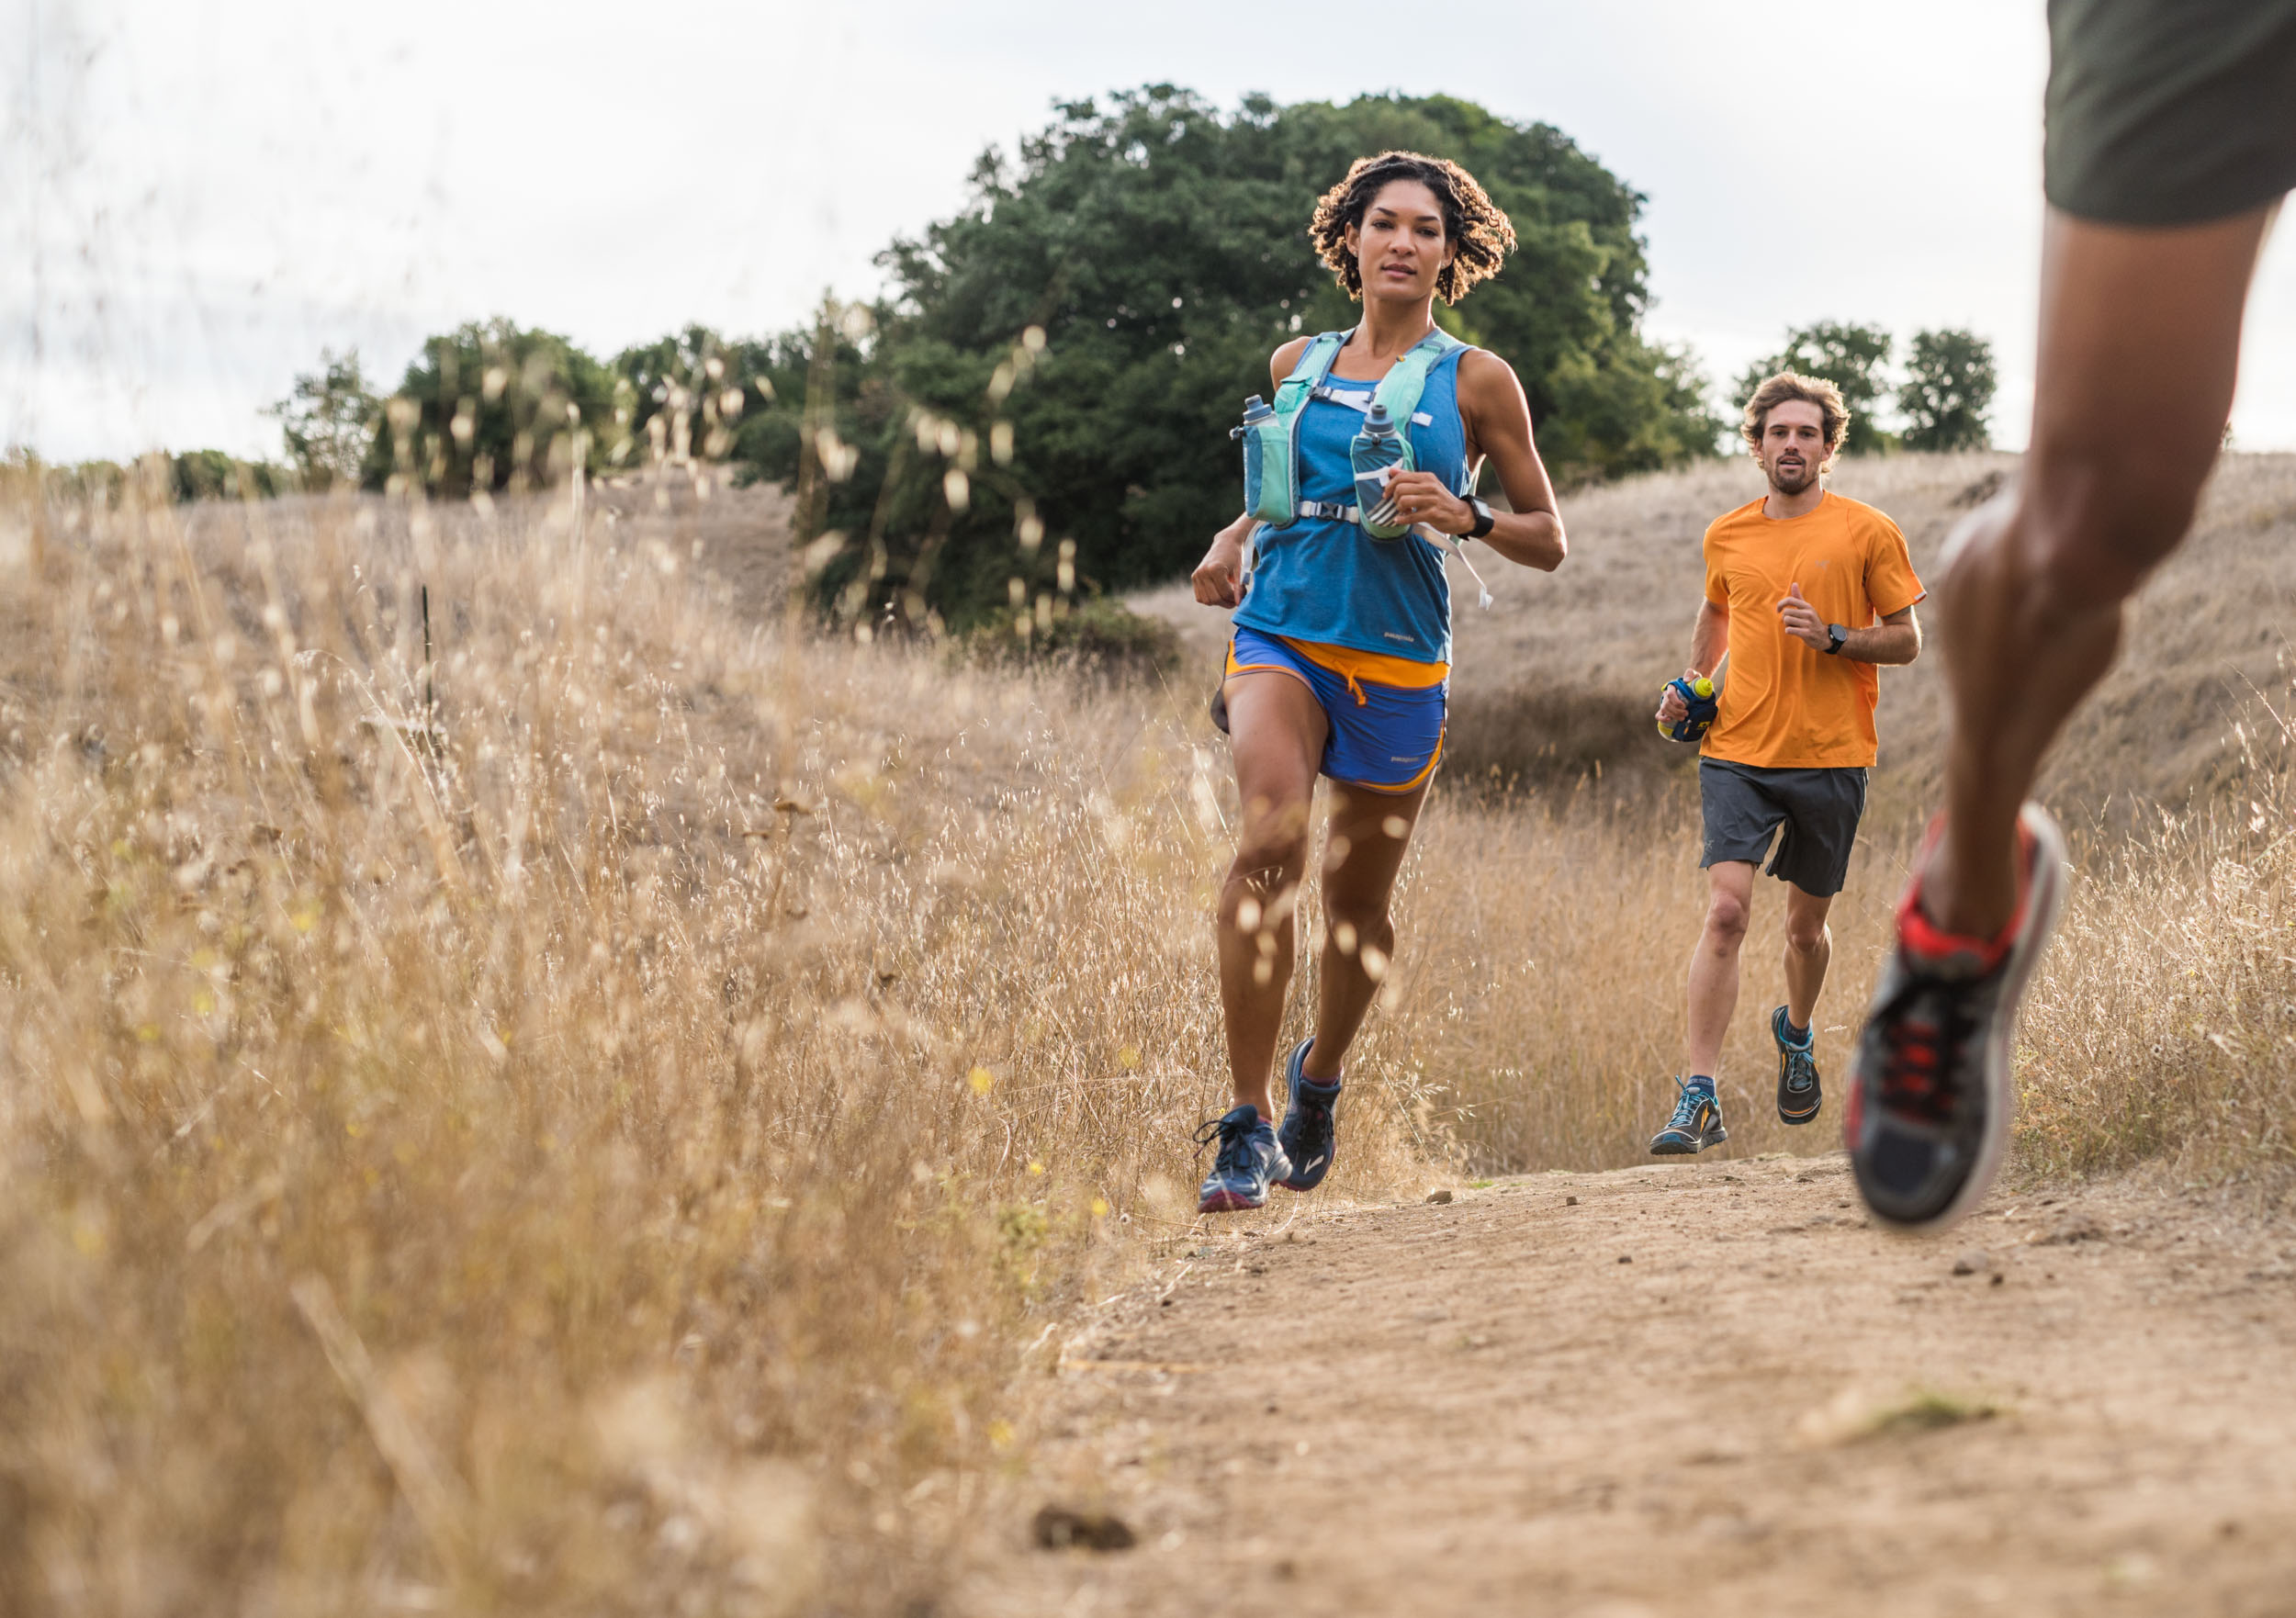 REI 2016 Spring Campaign -Trail Running